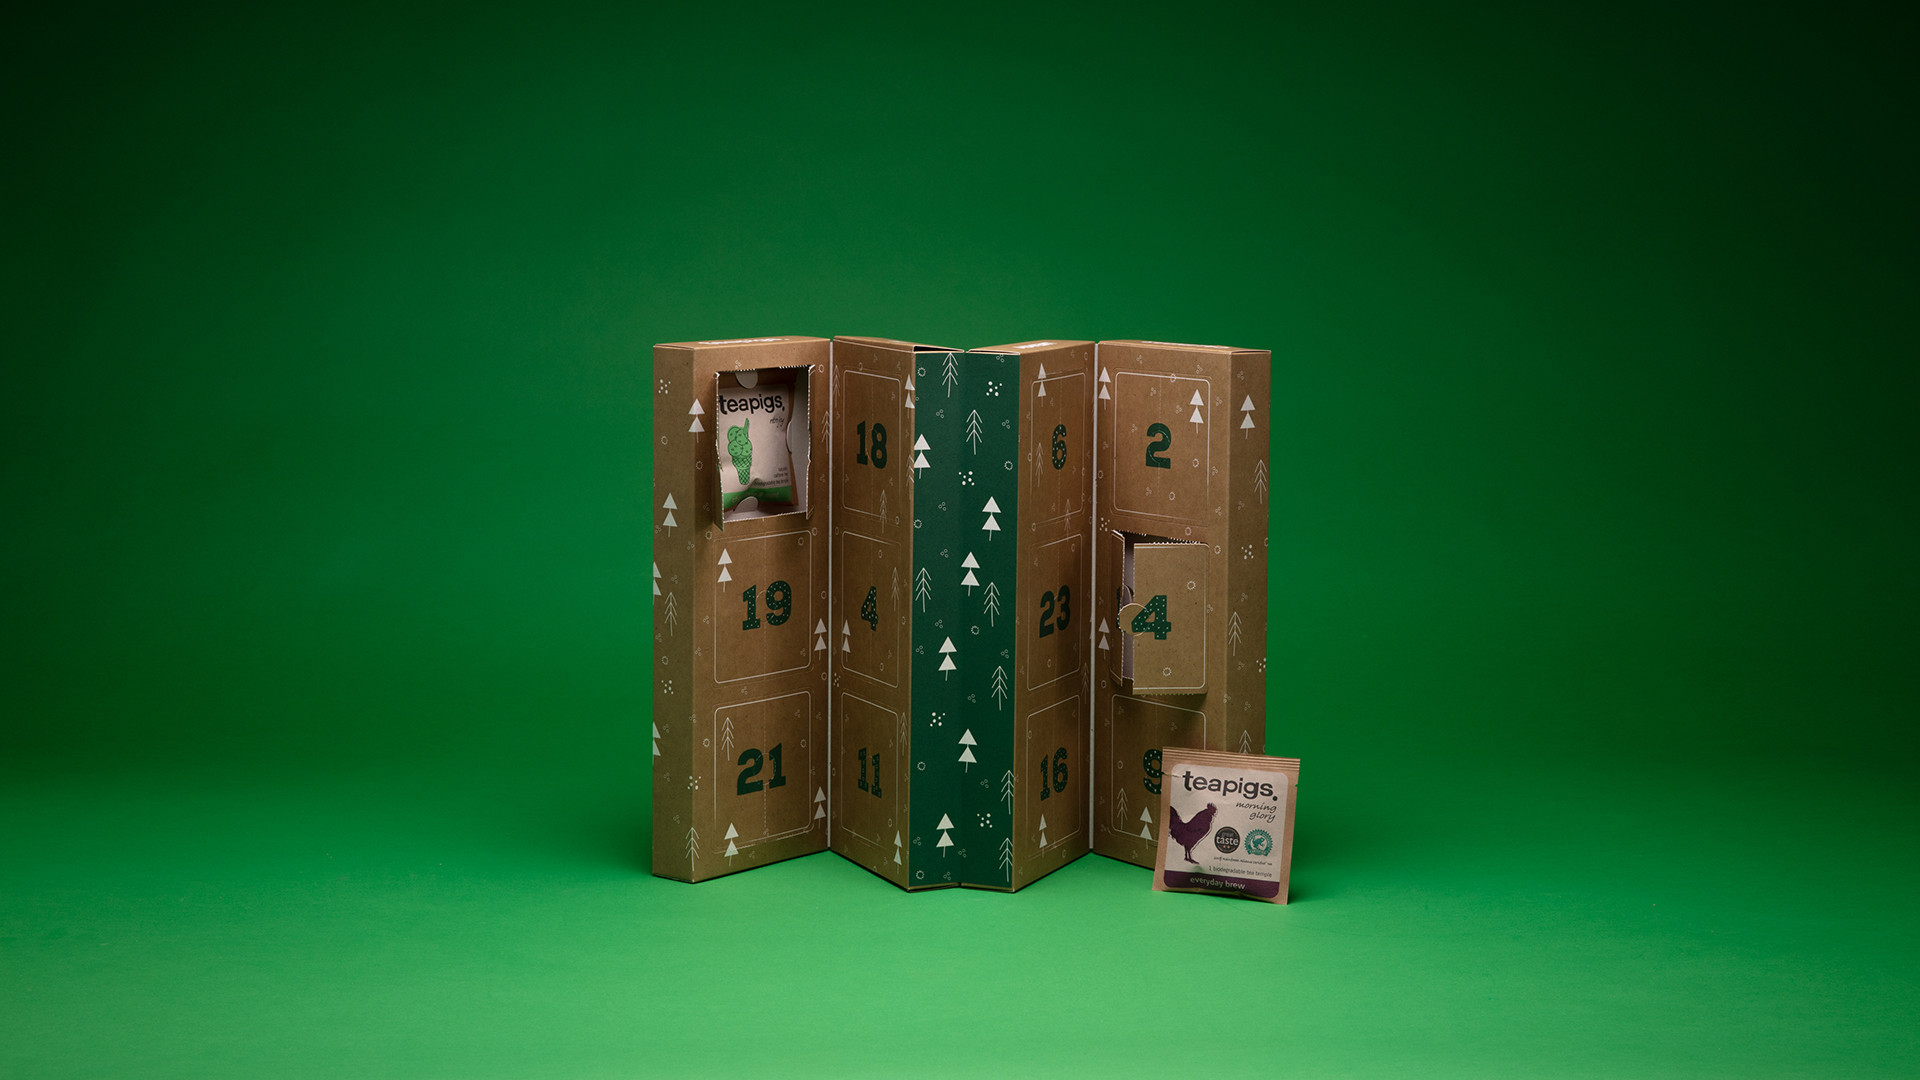 teapigs Christmas advent calendar, £29.99